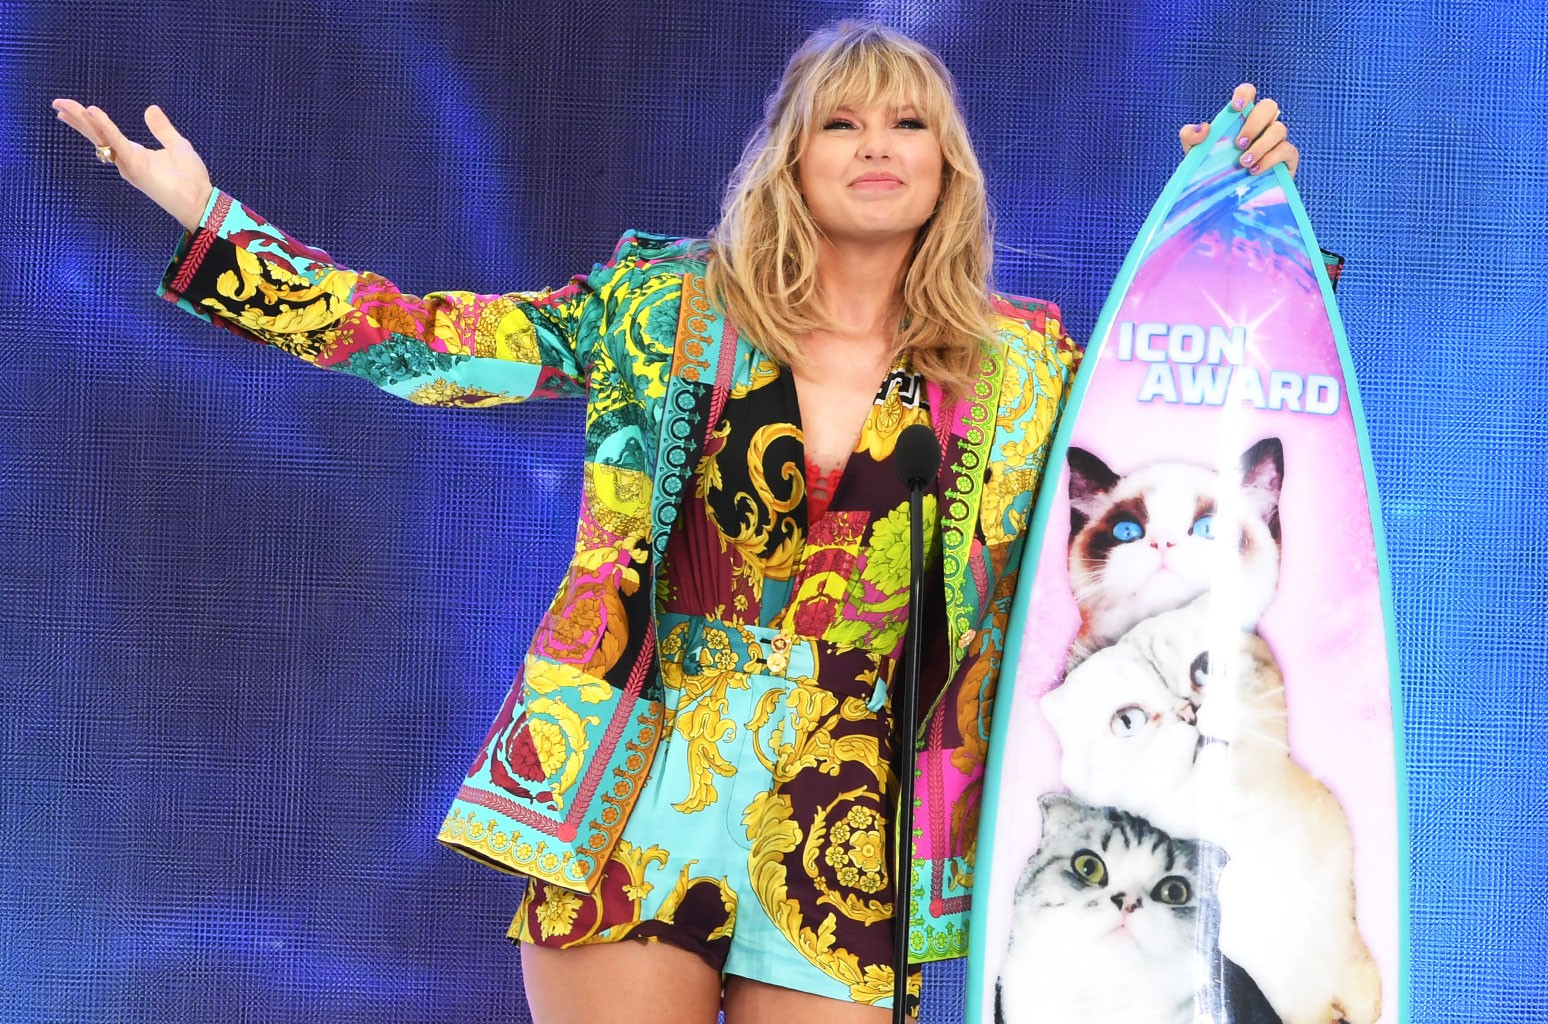 Taylor Swift Sends Fan Nearly 5 000 To Help Pay Her College Tuition Billboard